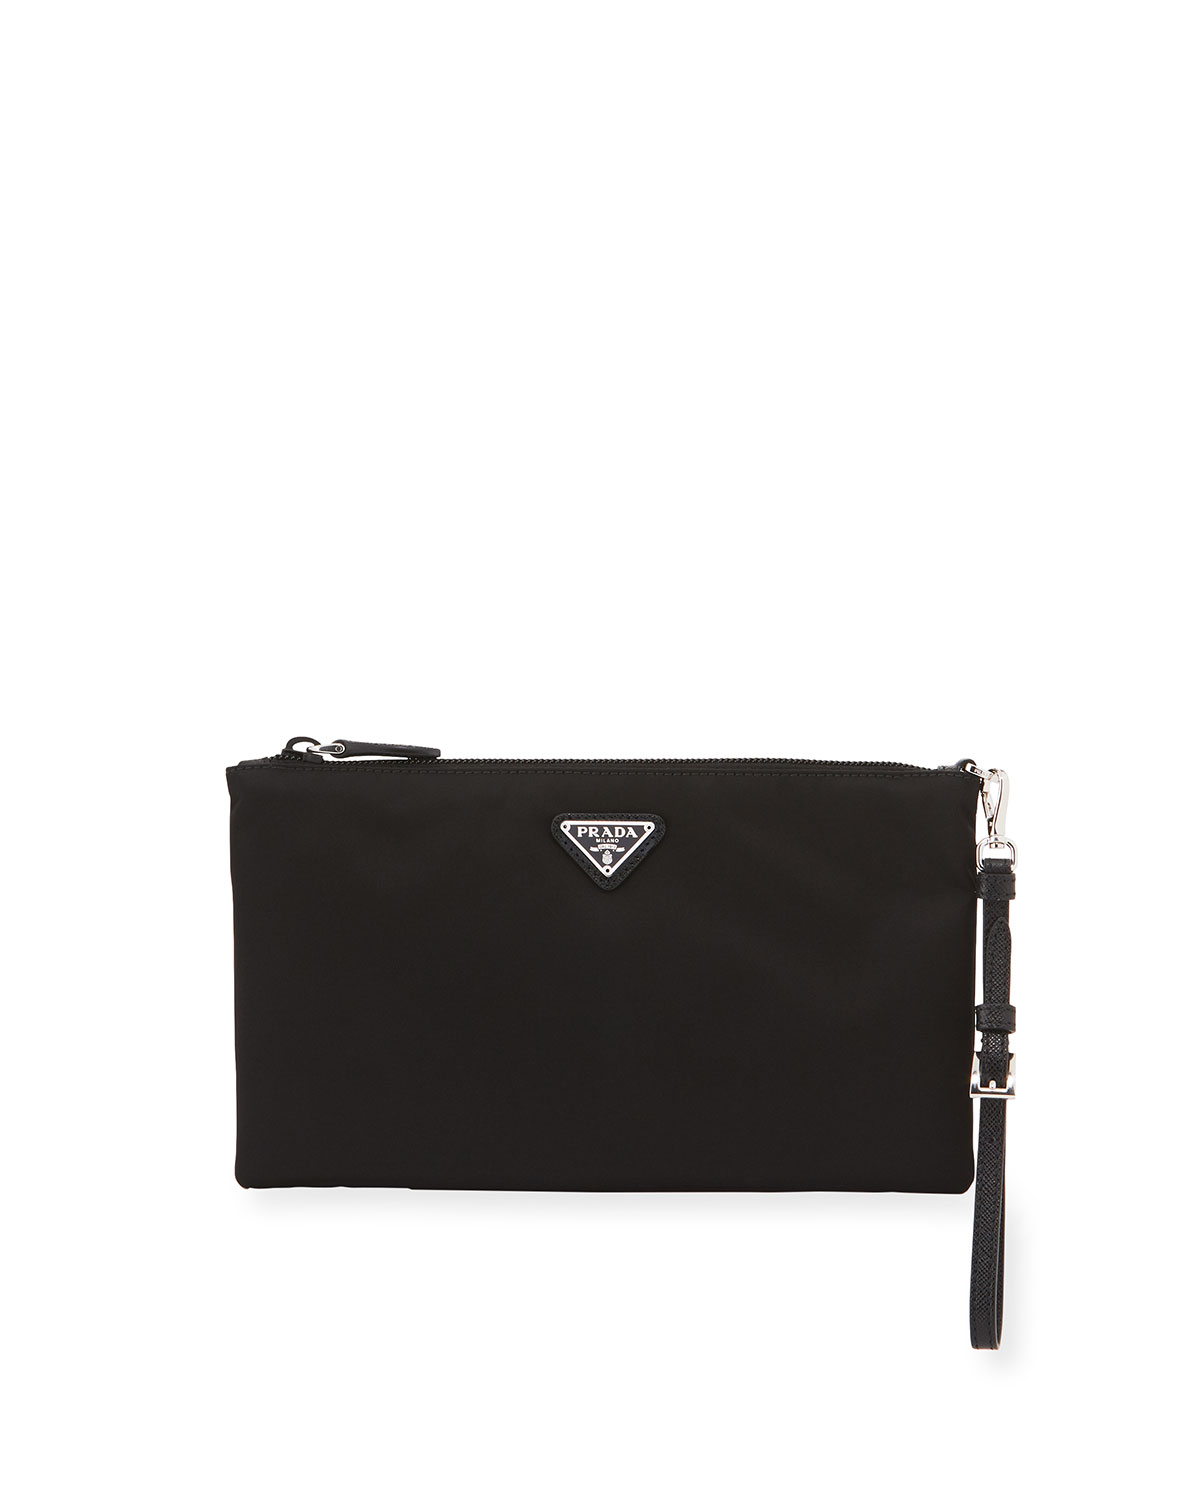 9a0bd177bdb0 Prada Vela Small Zip Pouch Clutch Bag